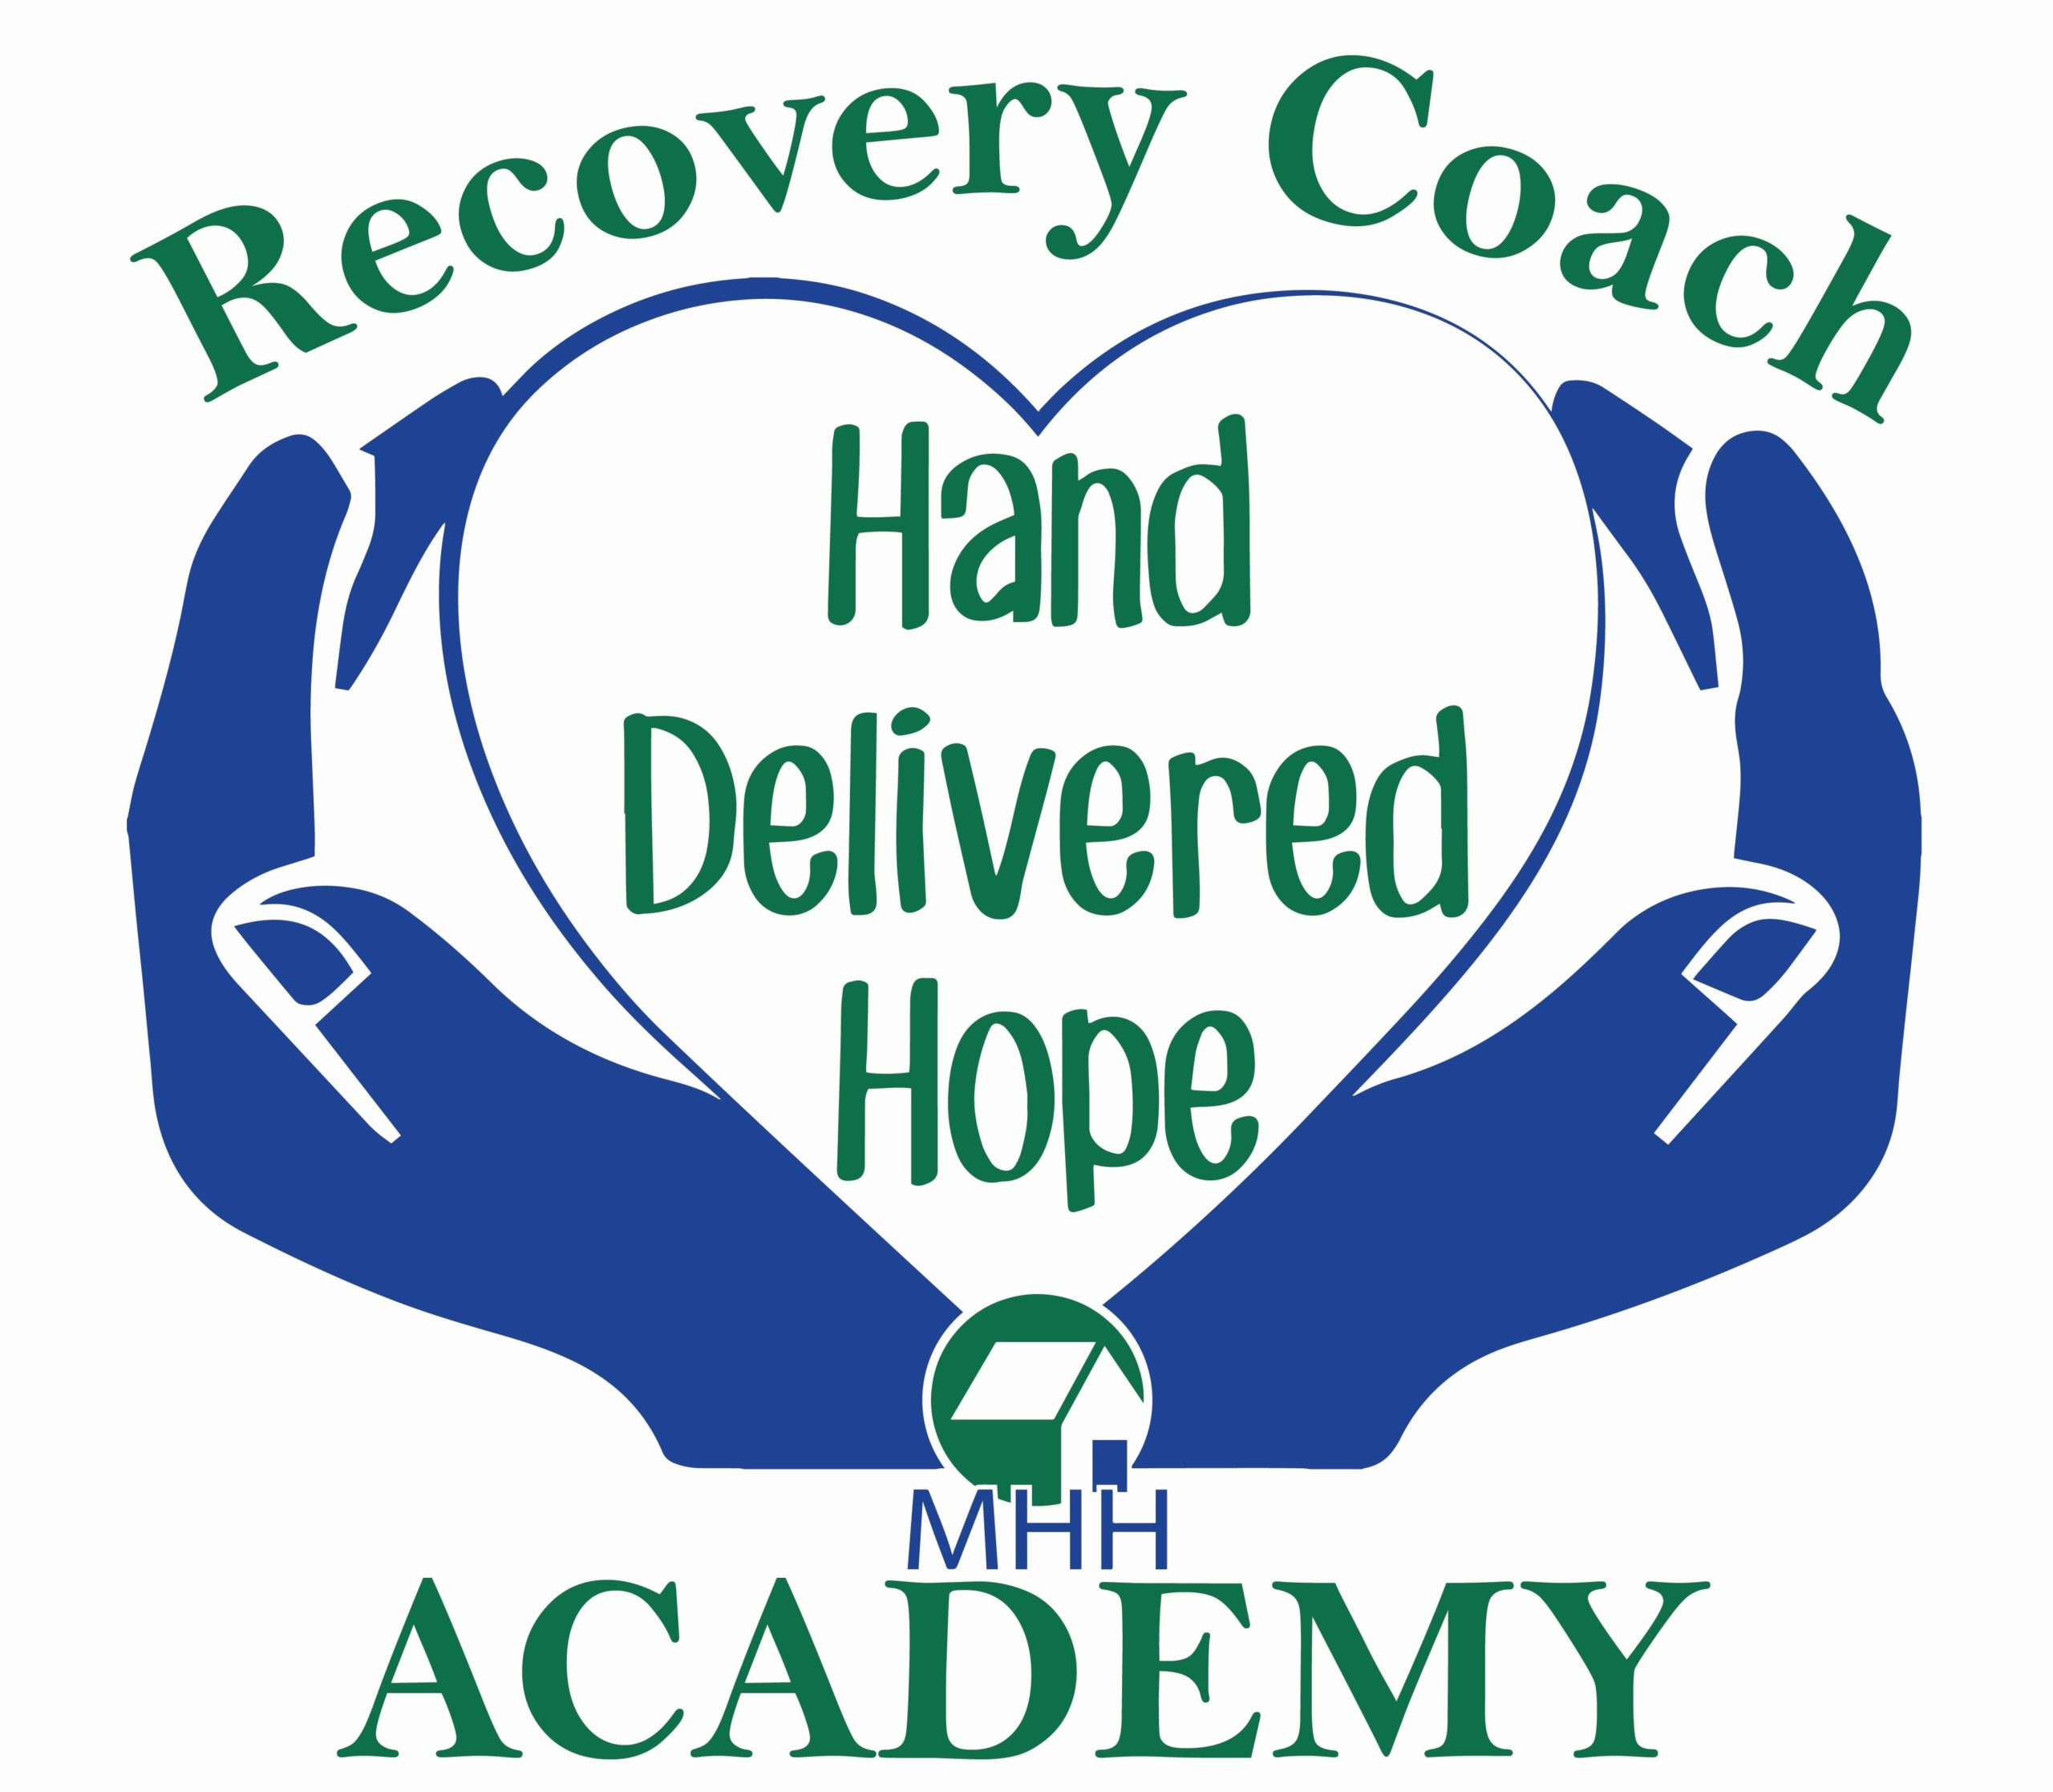 Recovery Coach Academy